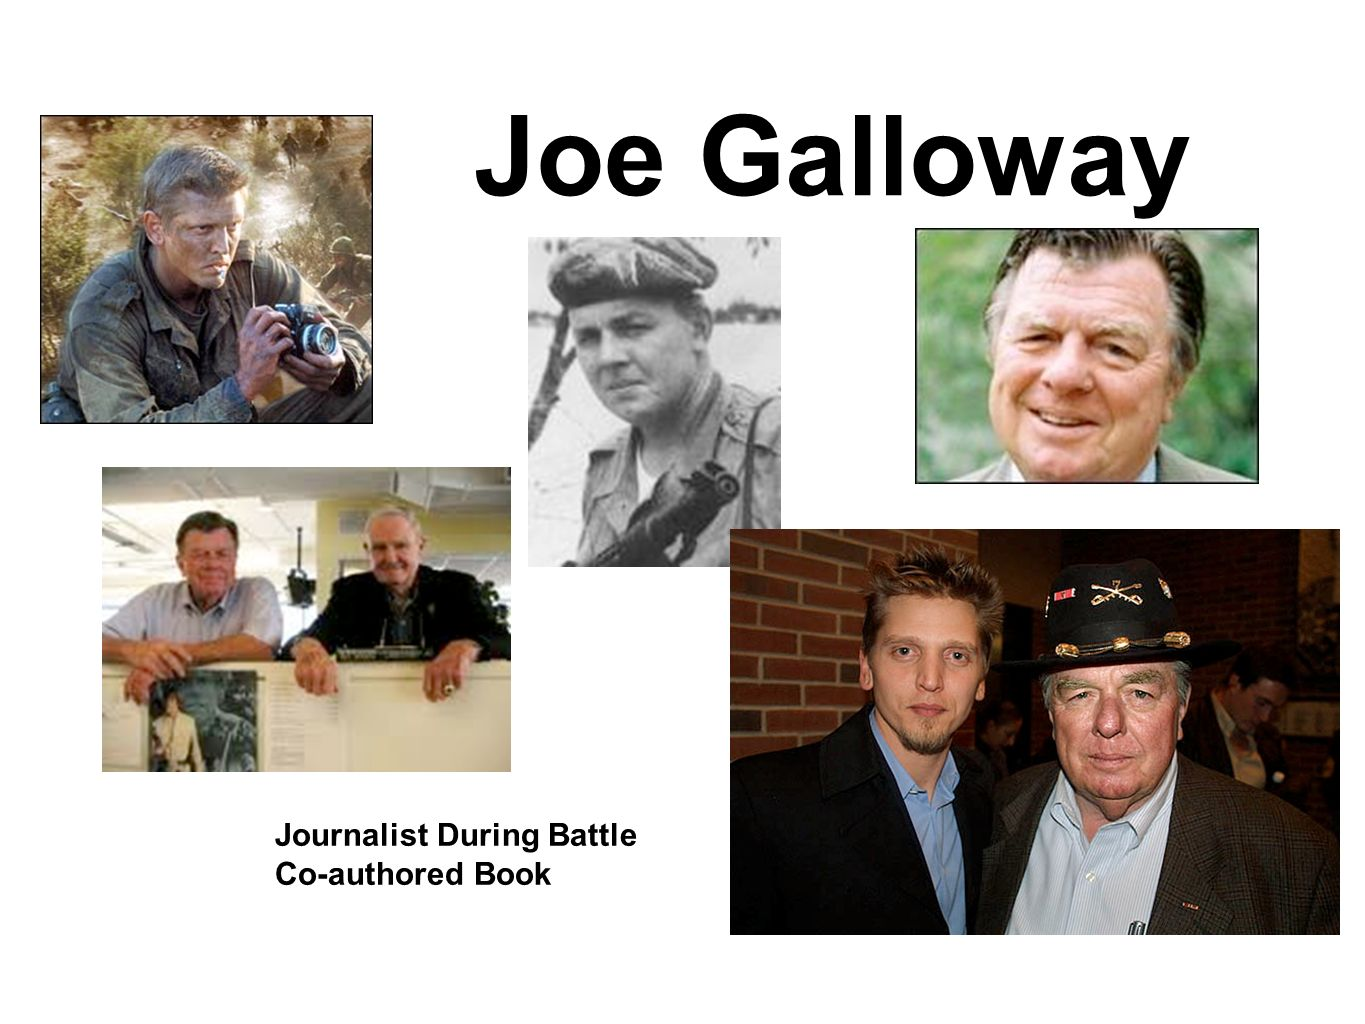 Joe Galloway Journalist During Battle Co-authored Book